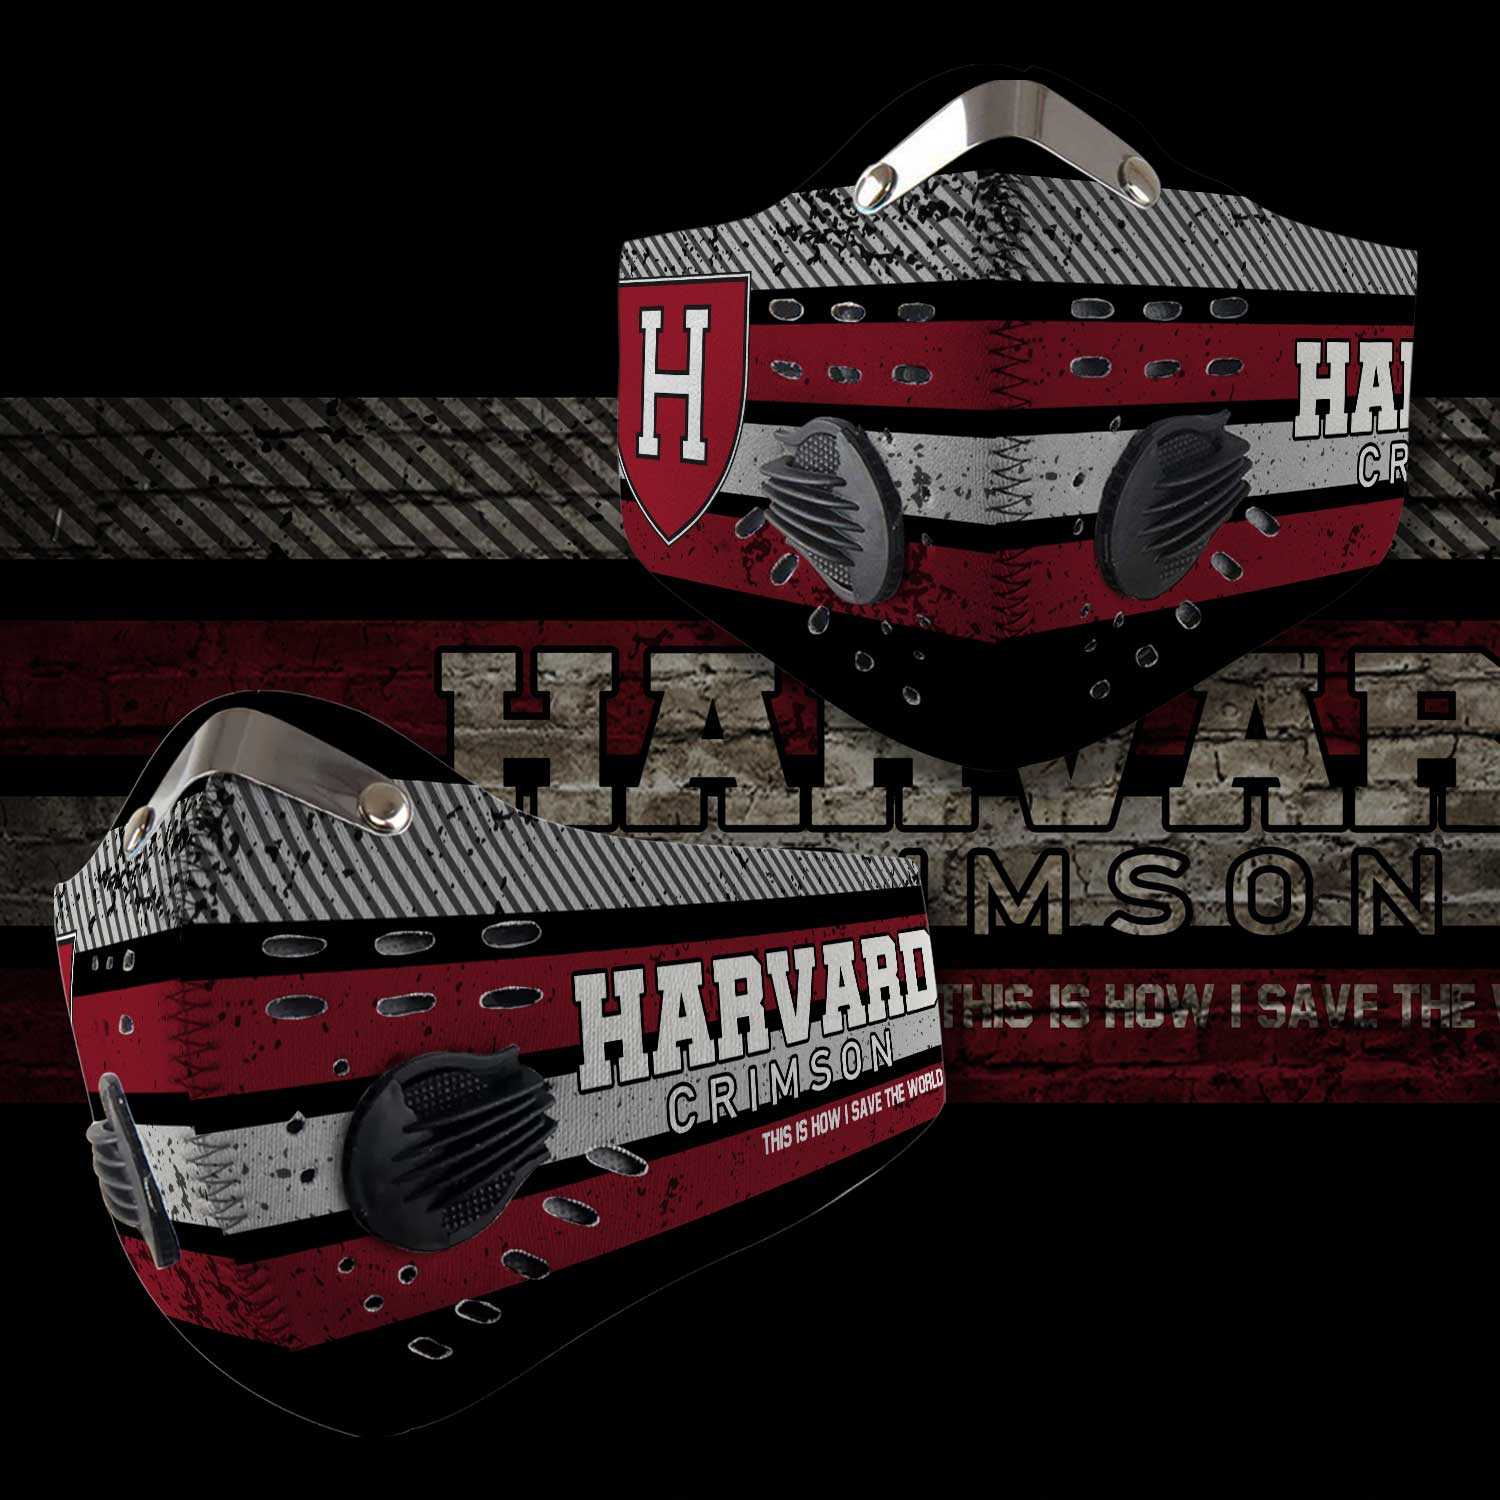 Harvard crimson this is how i save the world carbon filter face mask 2